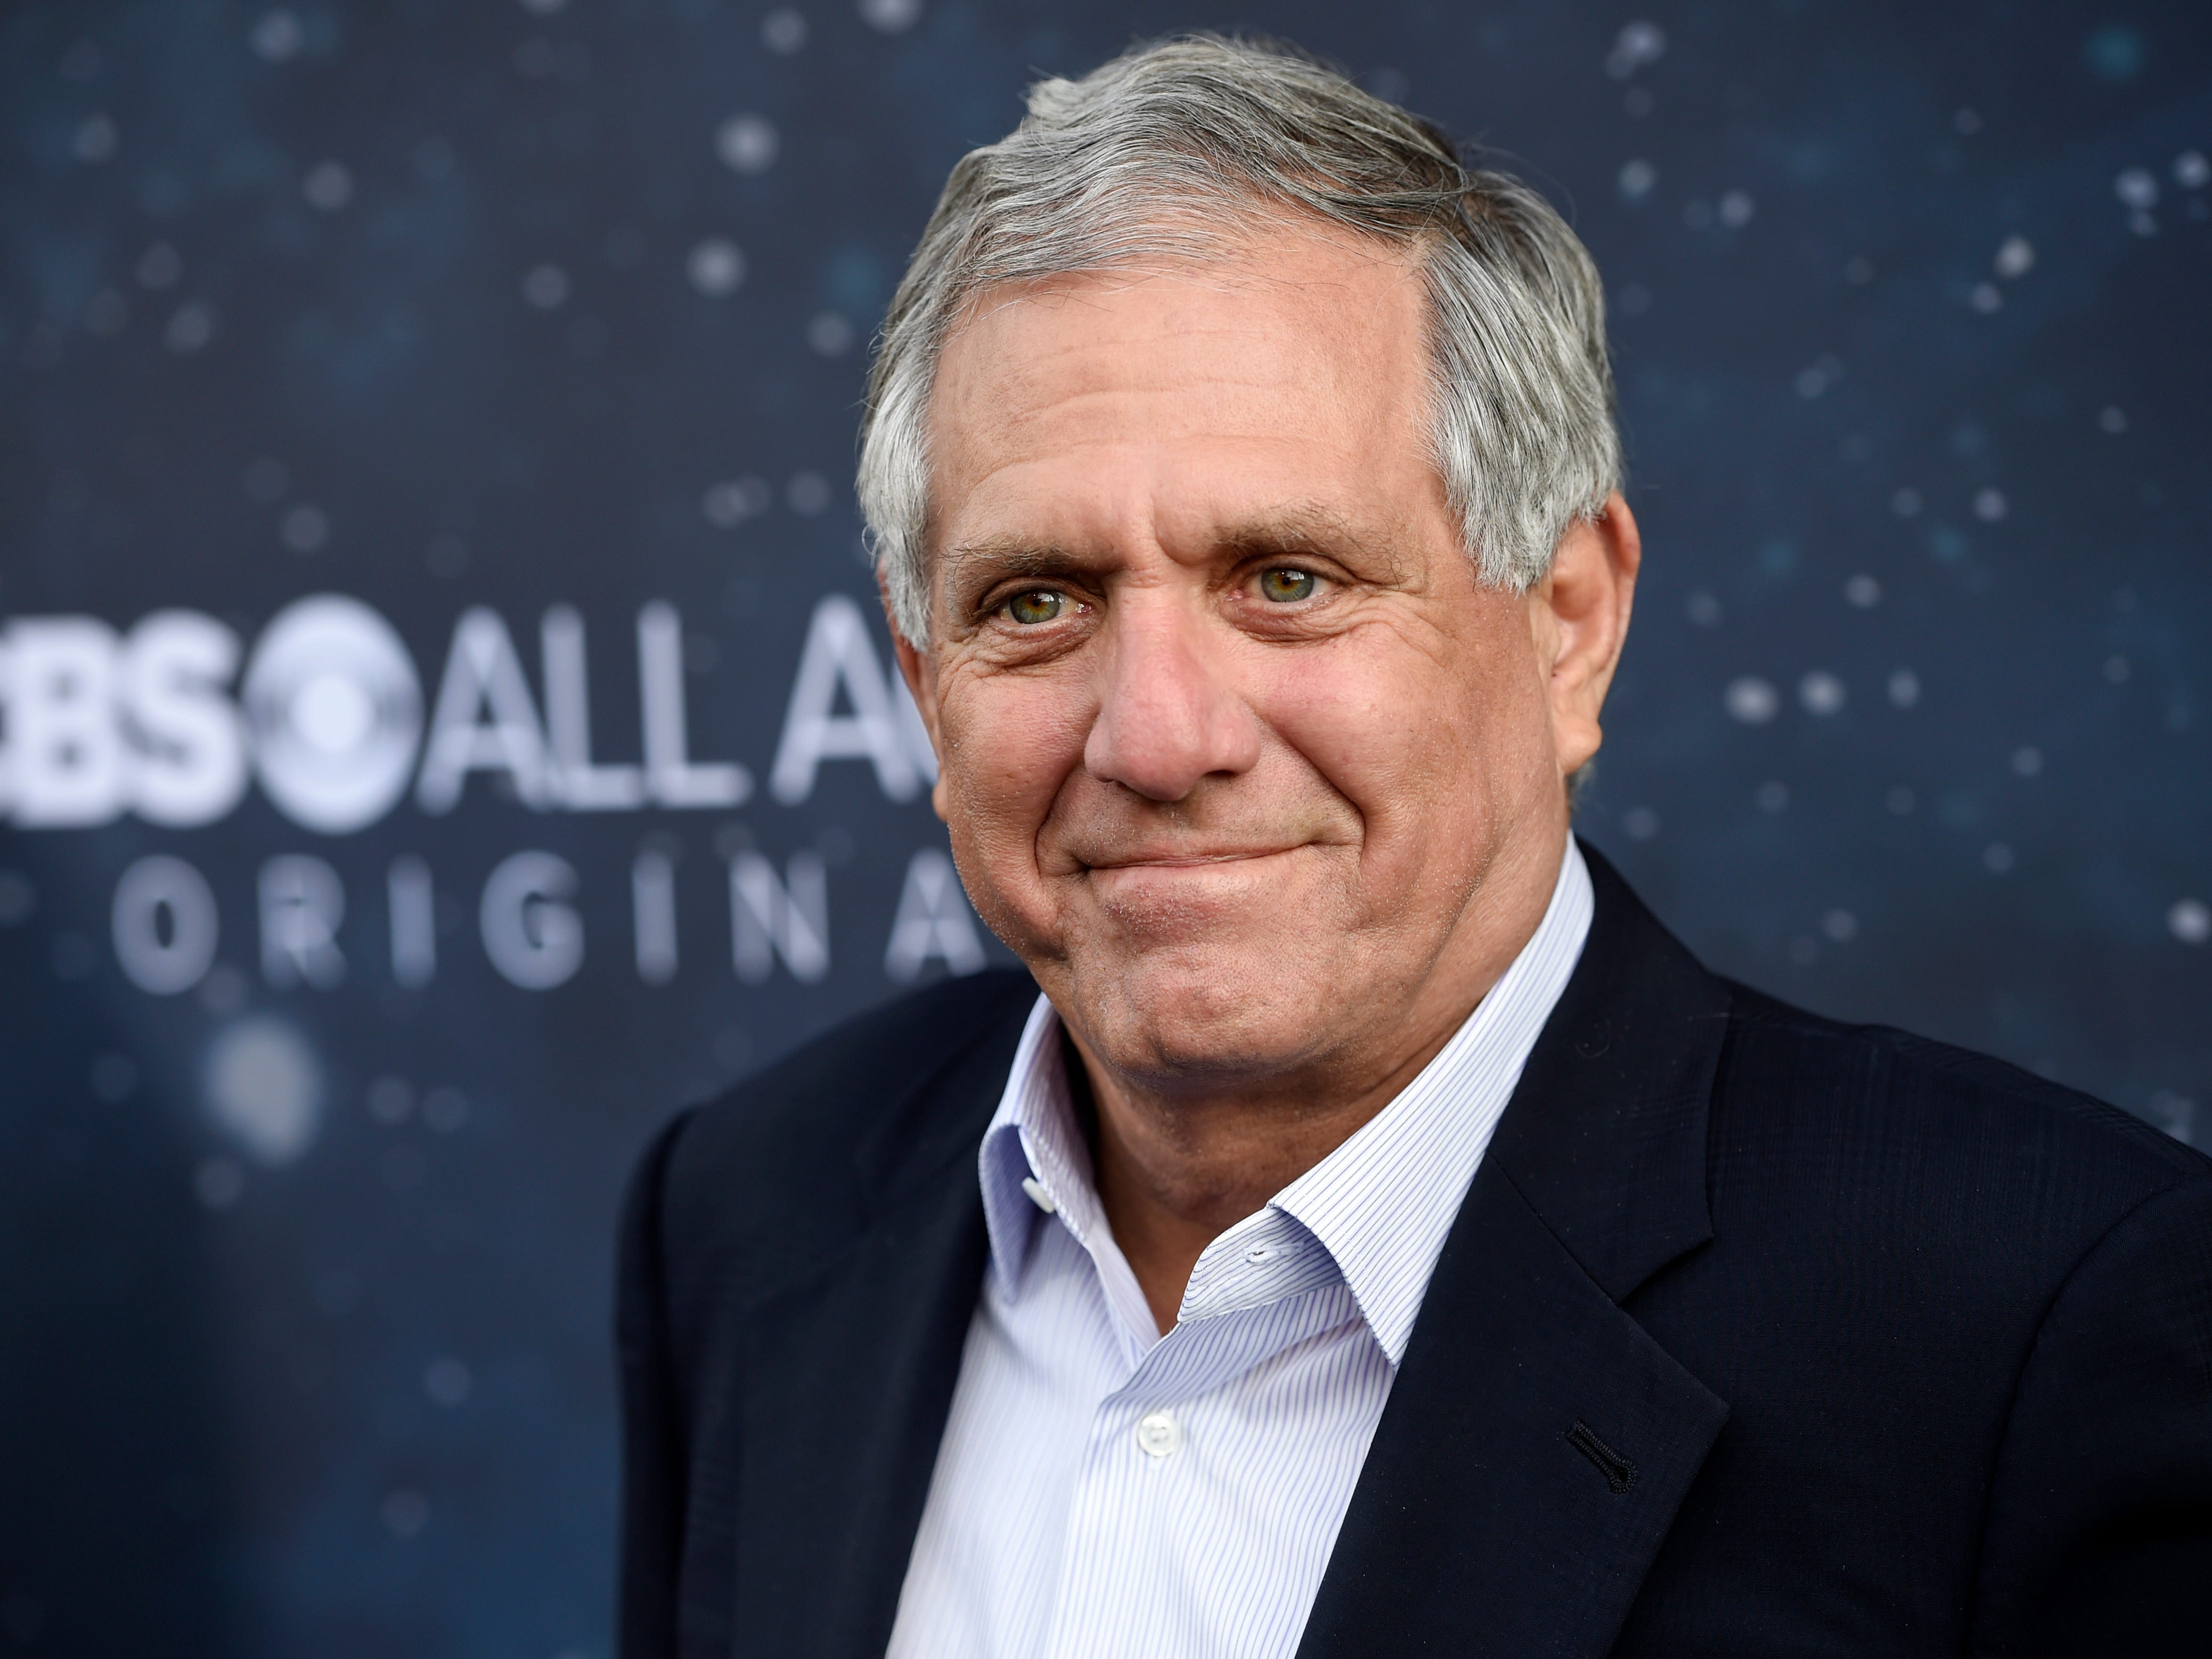 Scandal-plagued CBS hands out $20M to women's groups fighting sexual harassment